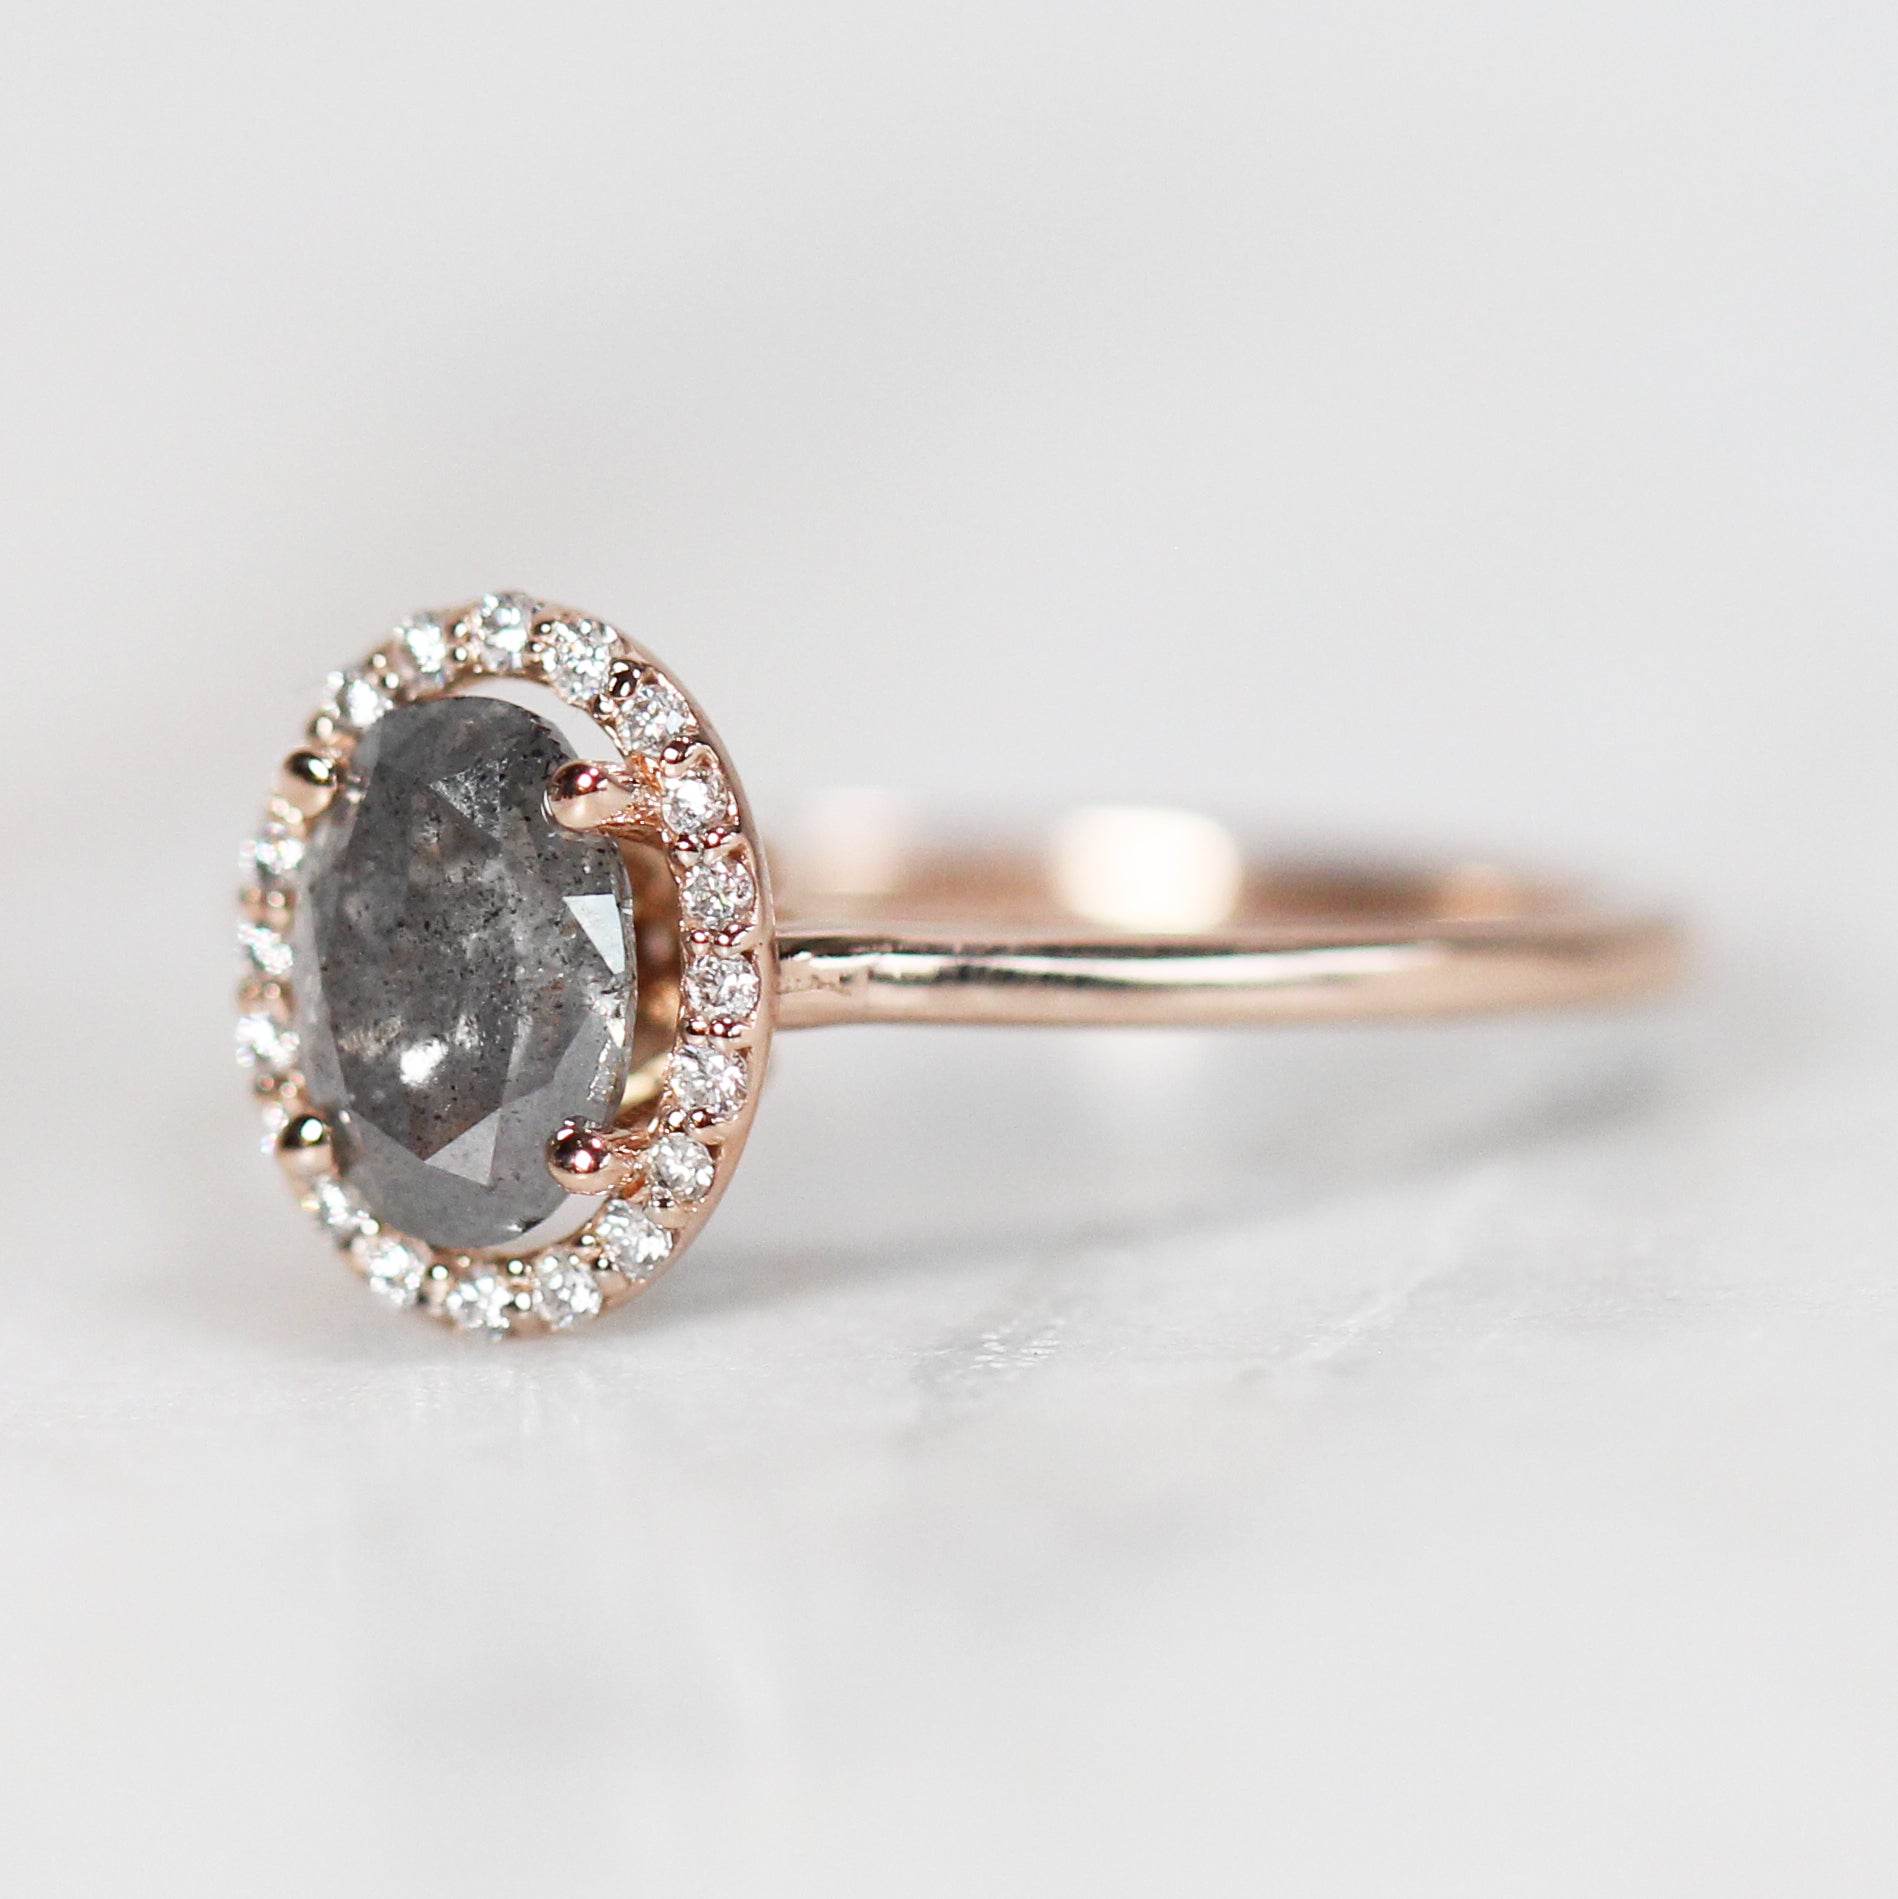 Cheryl Ring with 1.00 Carat Oval Celestial Diamond and White Diamond Halo in 14k Rose Gold